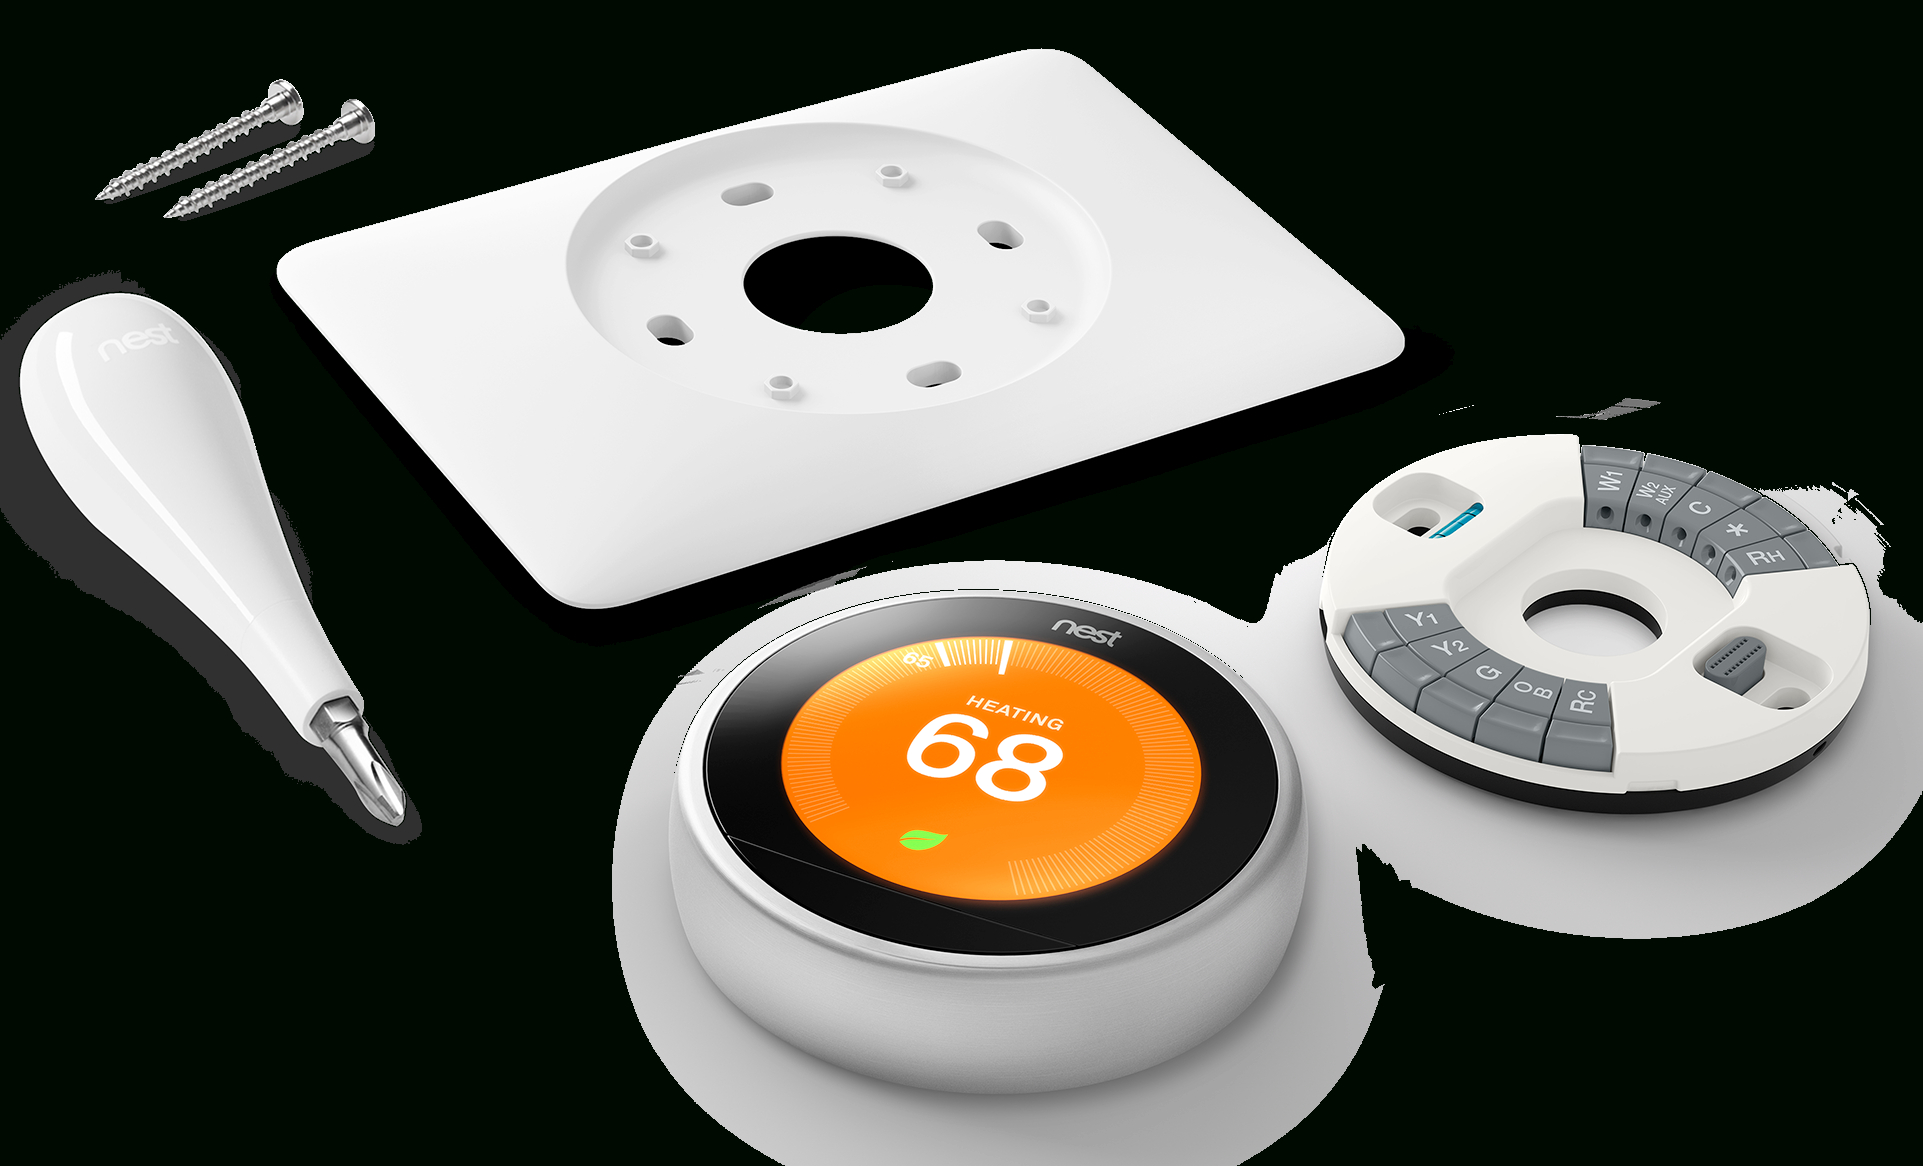 How To Install Your Nest Thermostat - 3Rd Generation Nest Thermostat Wiring Diagram